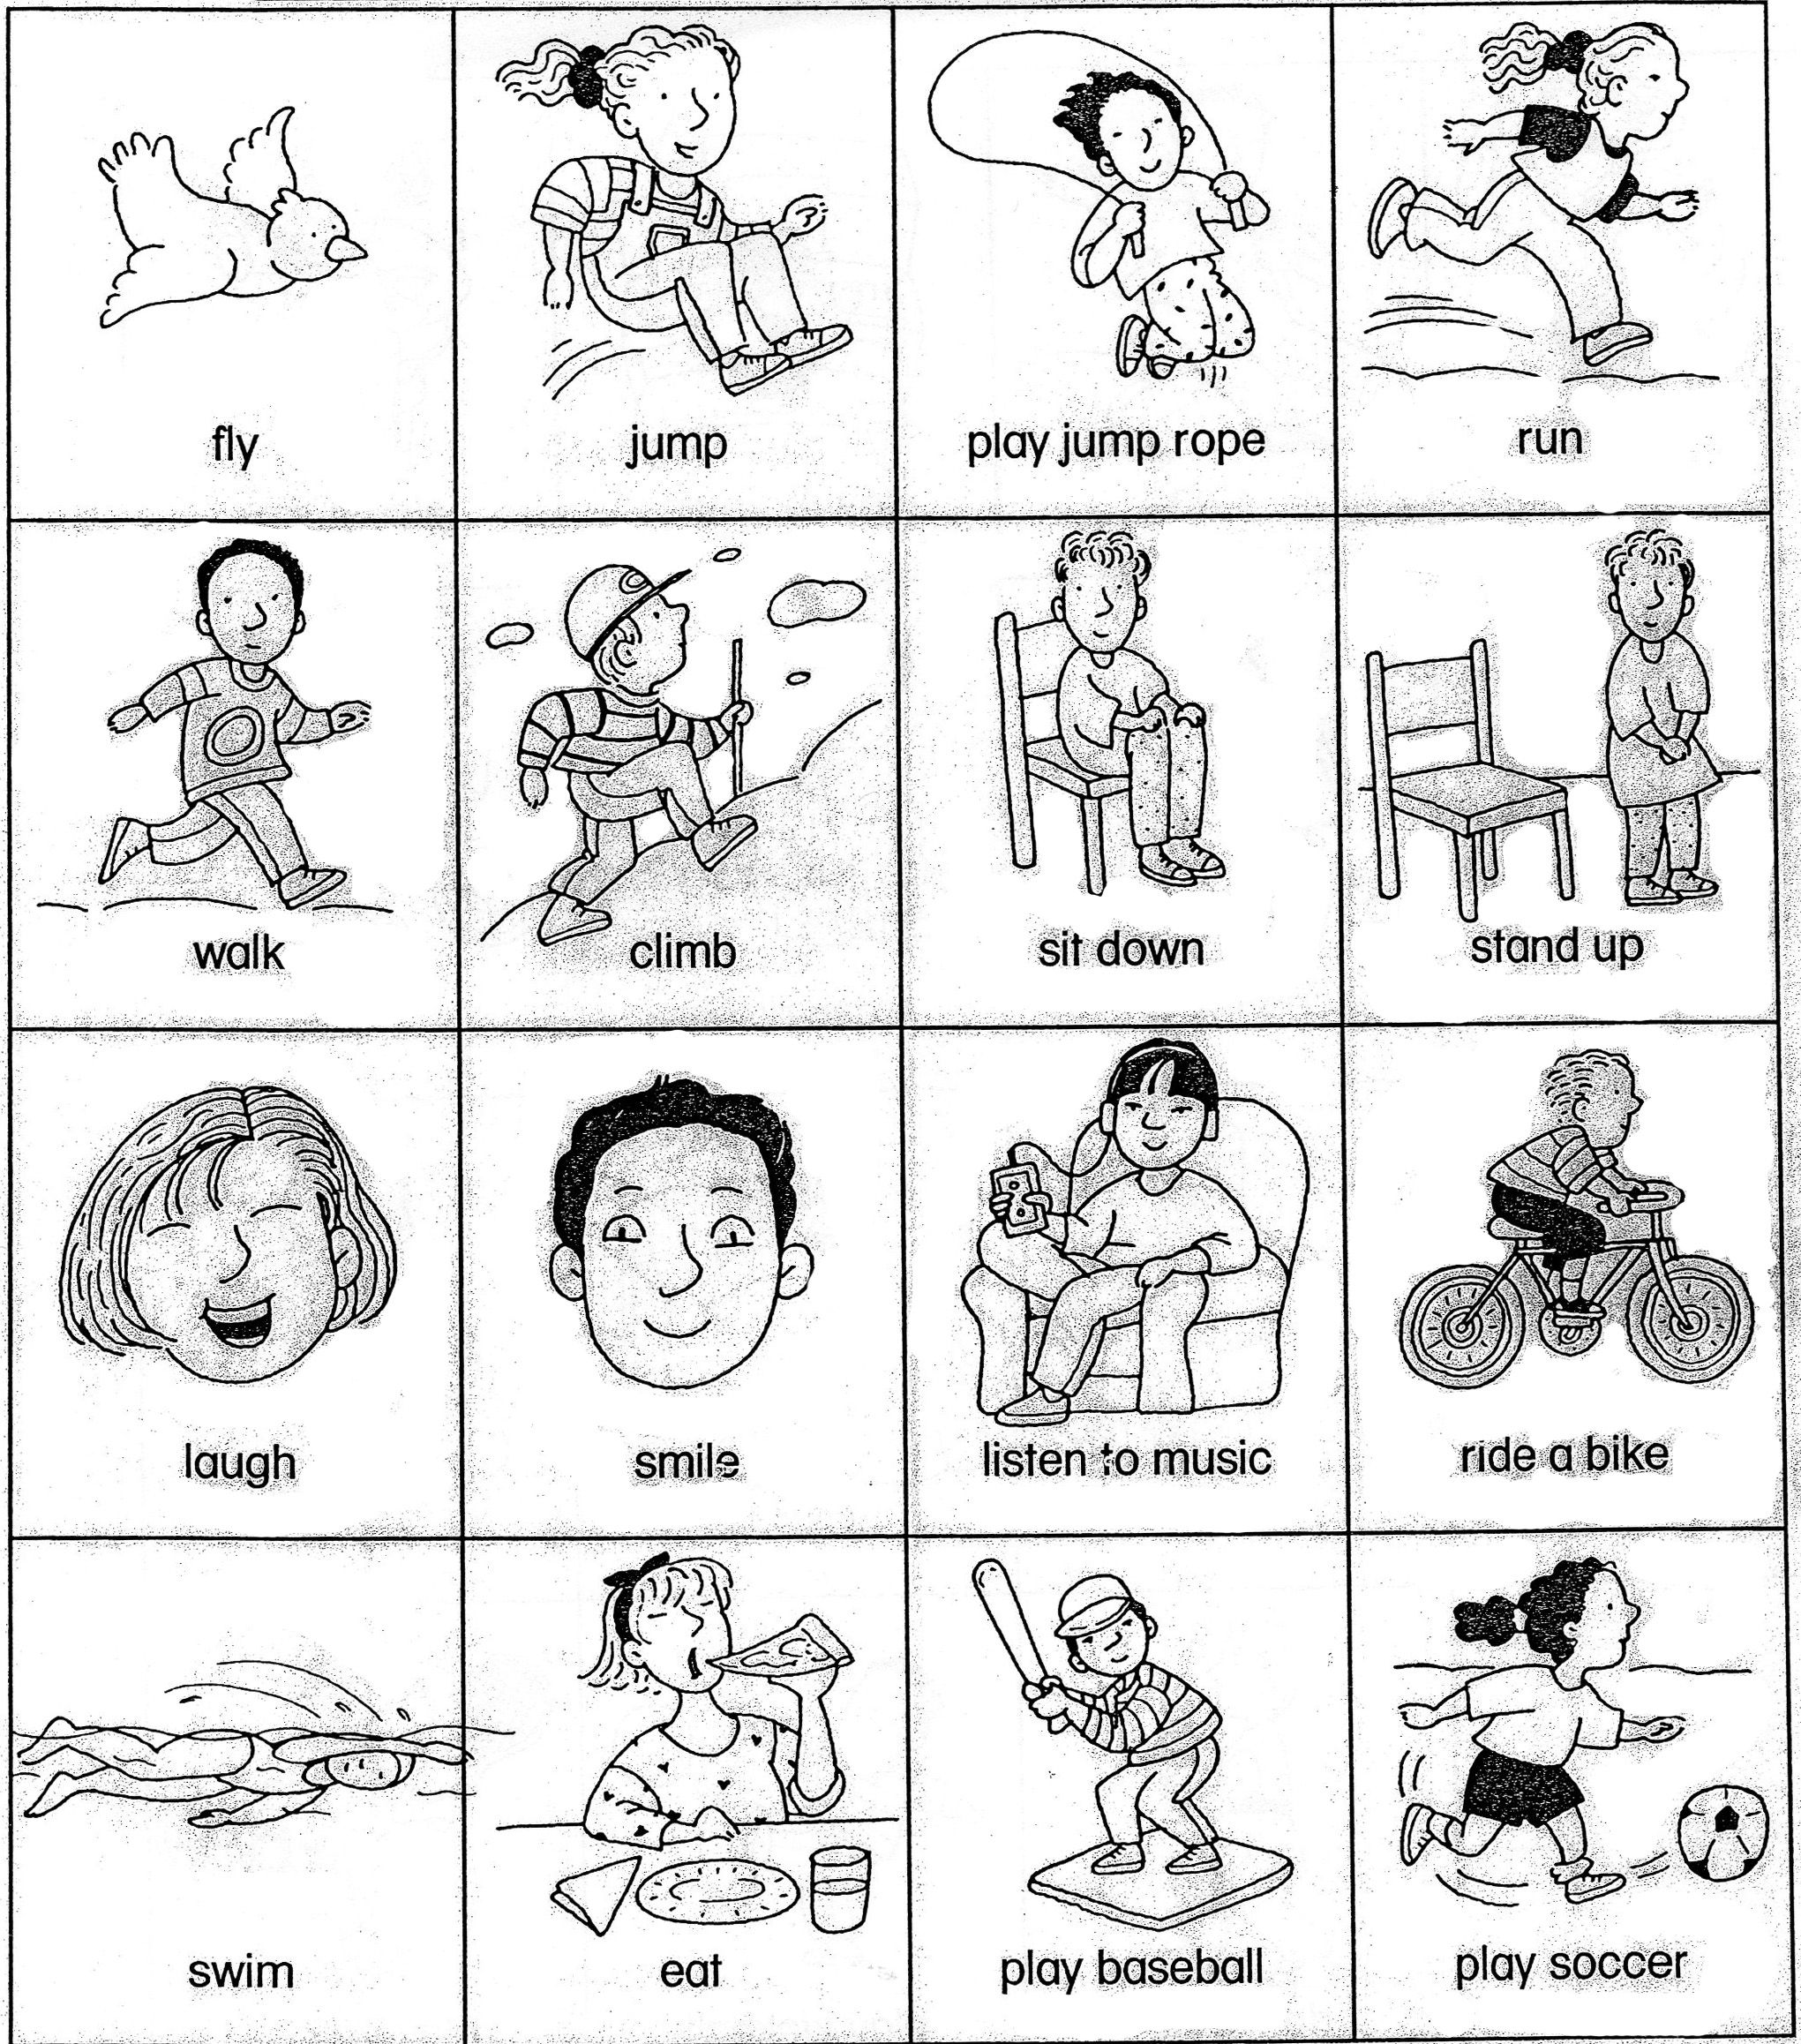 Games to Play with Children to Build Vocabulary